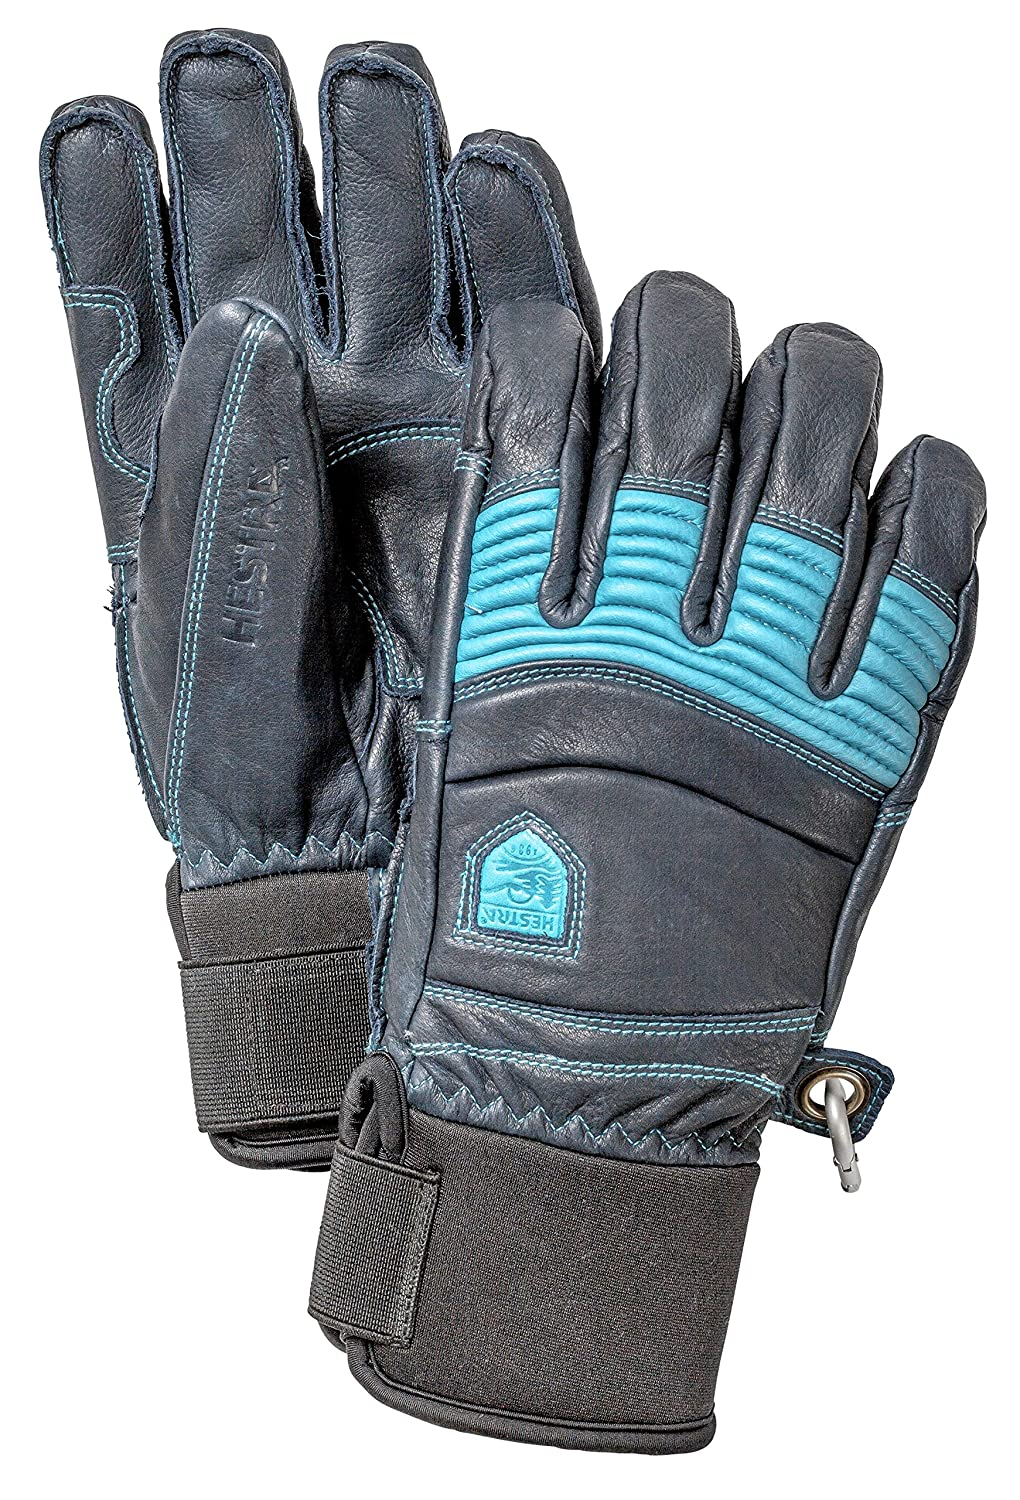 Patagonia mens gloves - Amazon Com Hestra Leather Fall Line Ski And Cold Weather Gloves Unisex Sports Outdoors